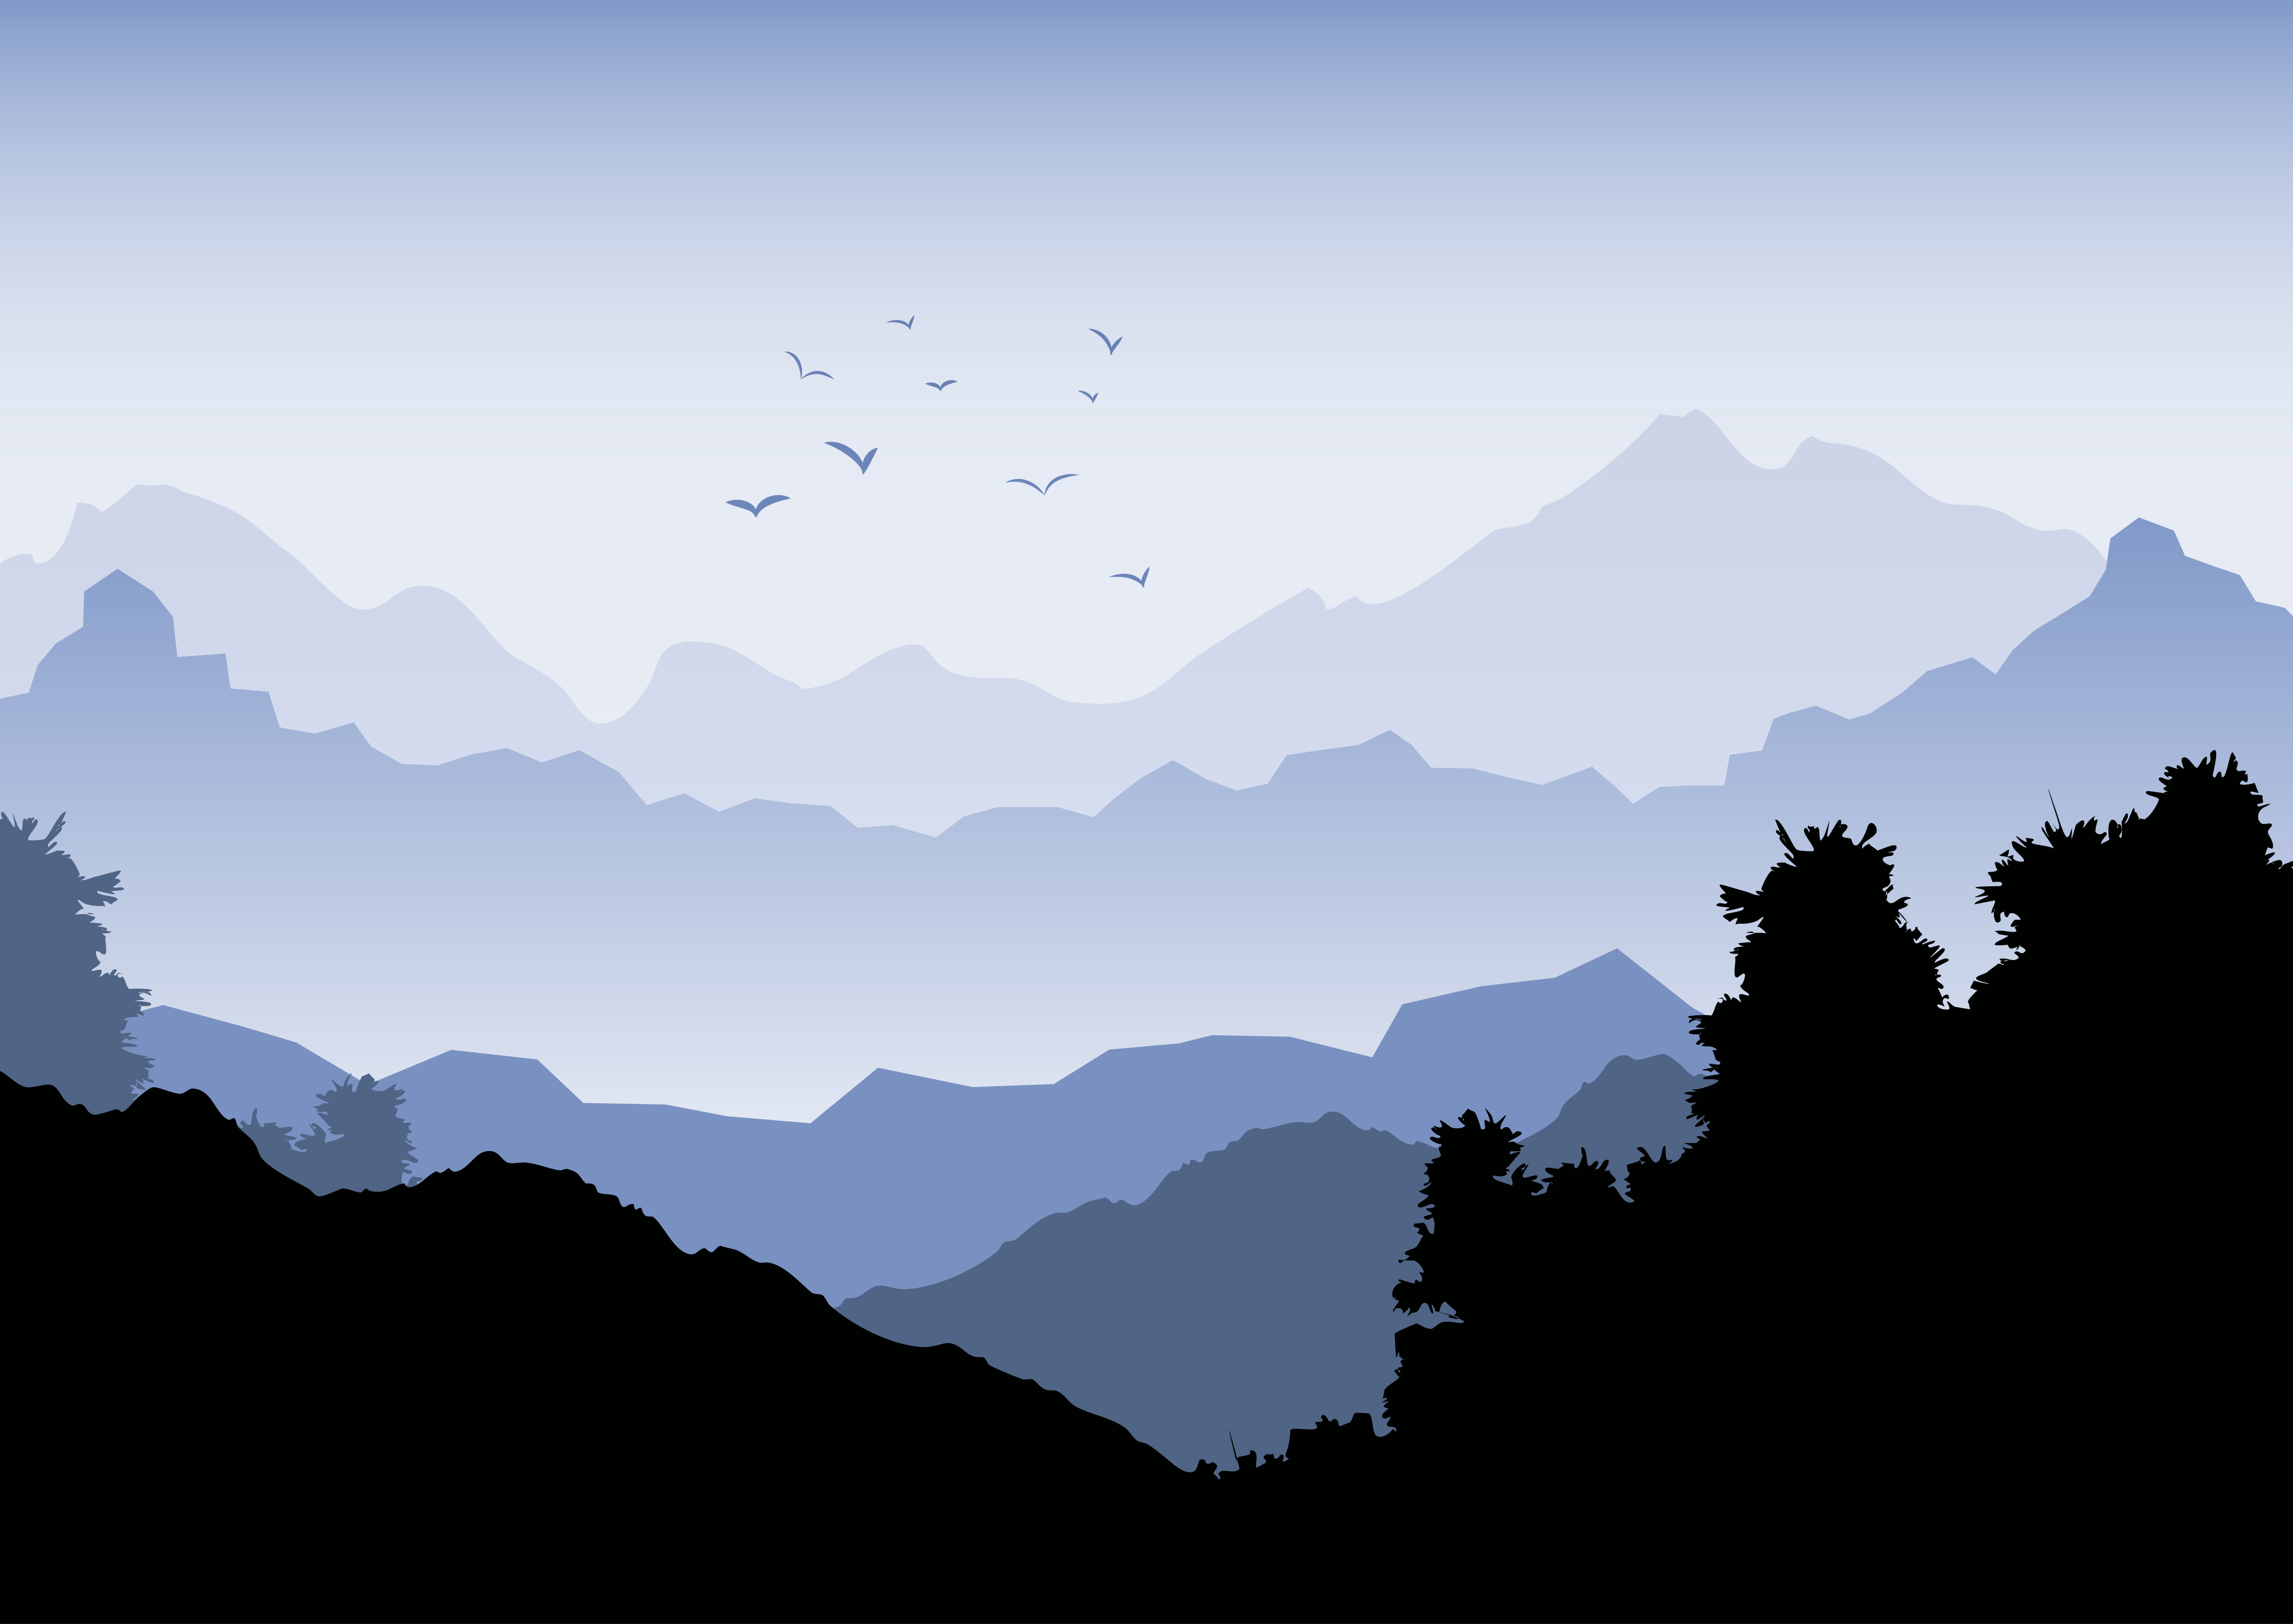 Landscape Background With Mountains And Flock Of Birds Vector Art Graphics Download Royalty Free Illustrations Svg Clipart